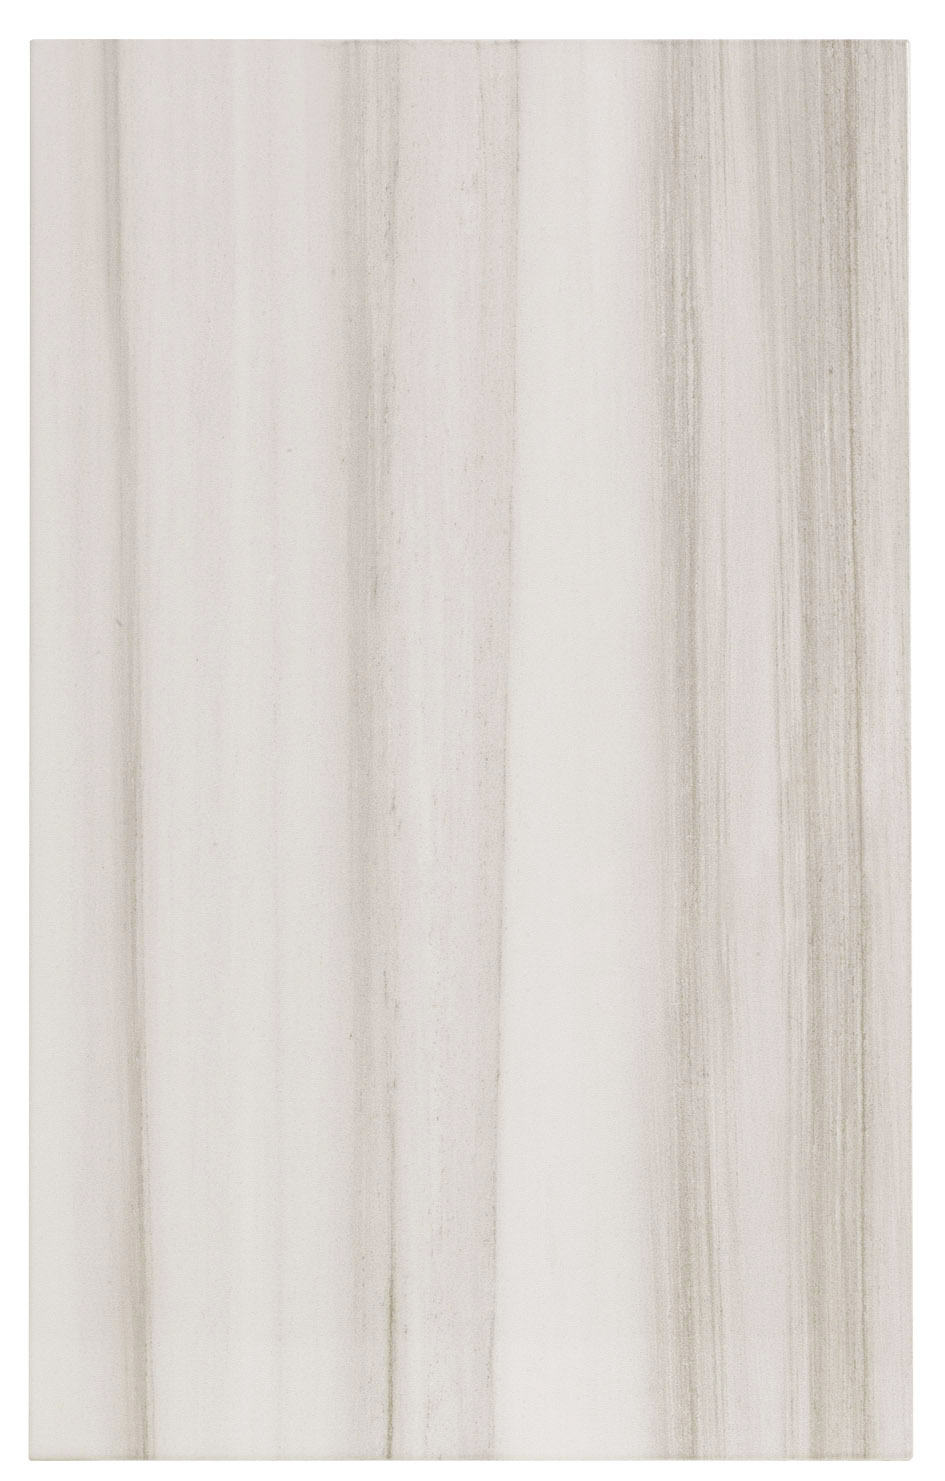 "Horizon Taupe Wall Ceramic Tile - 10"" x 16"" Image"